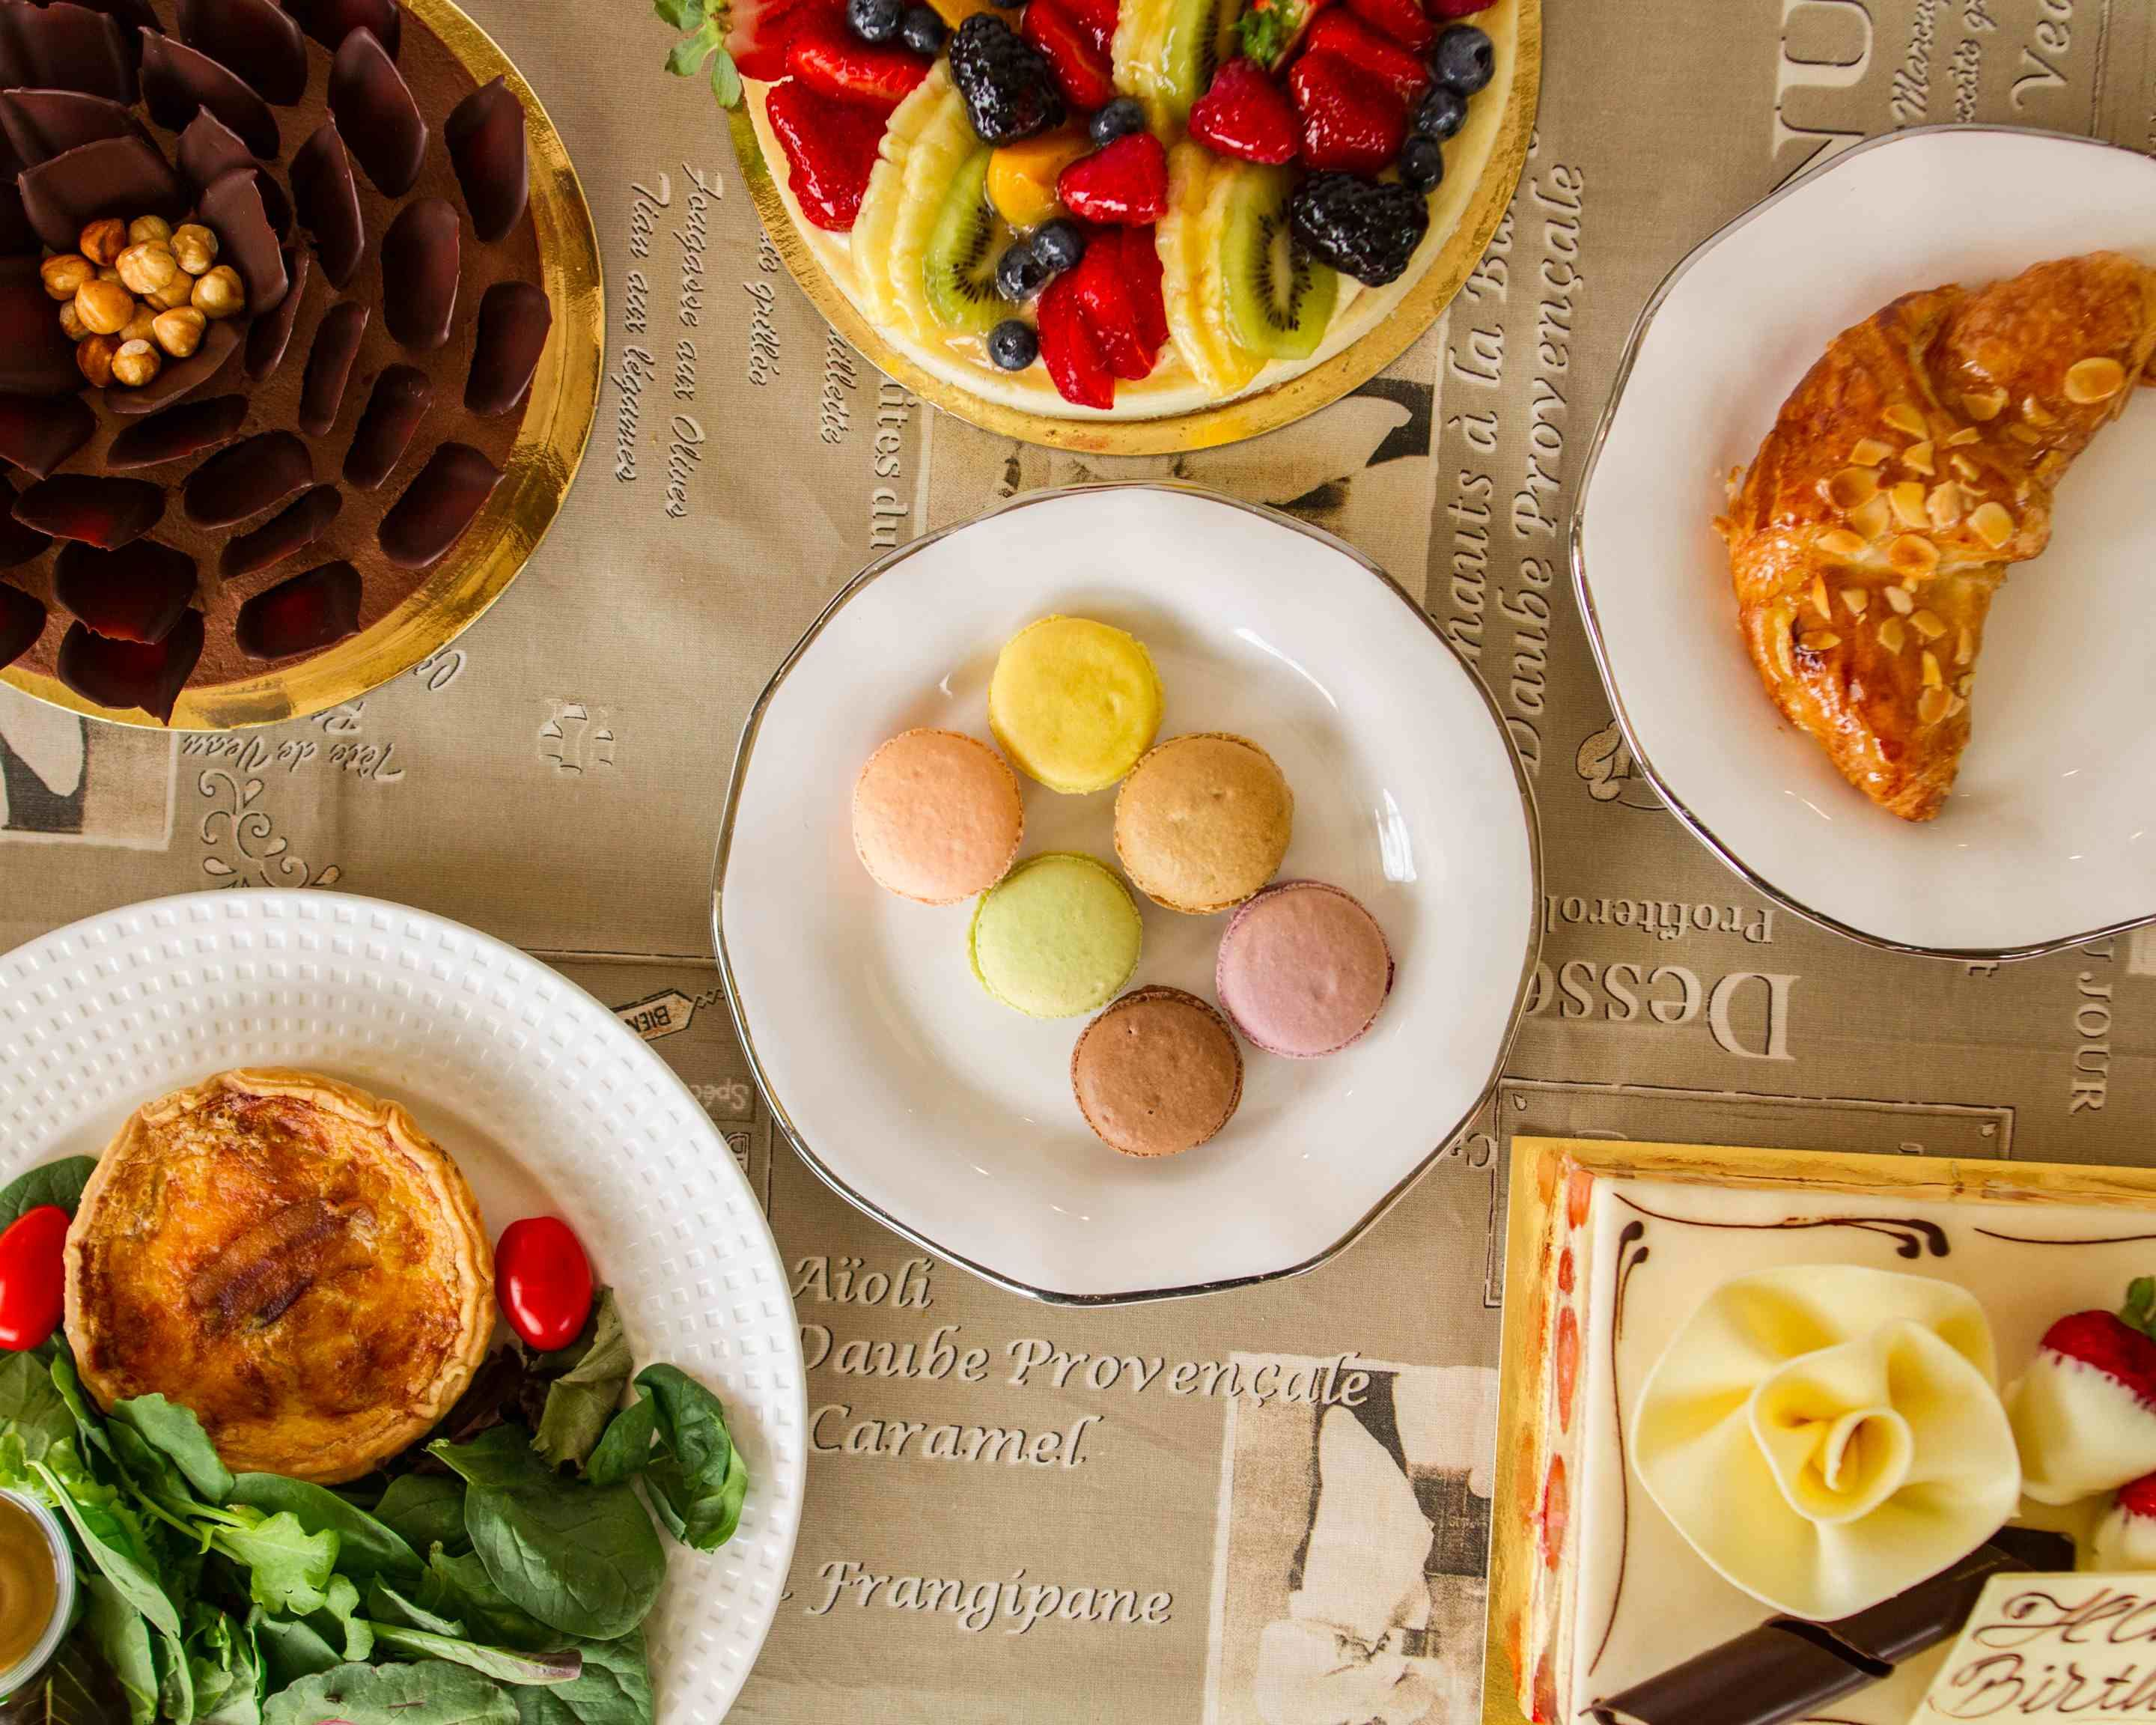 Patisserie Poupon Delivery Baltimore-Maryland Uber Eats